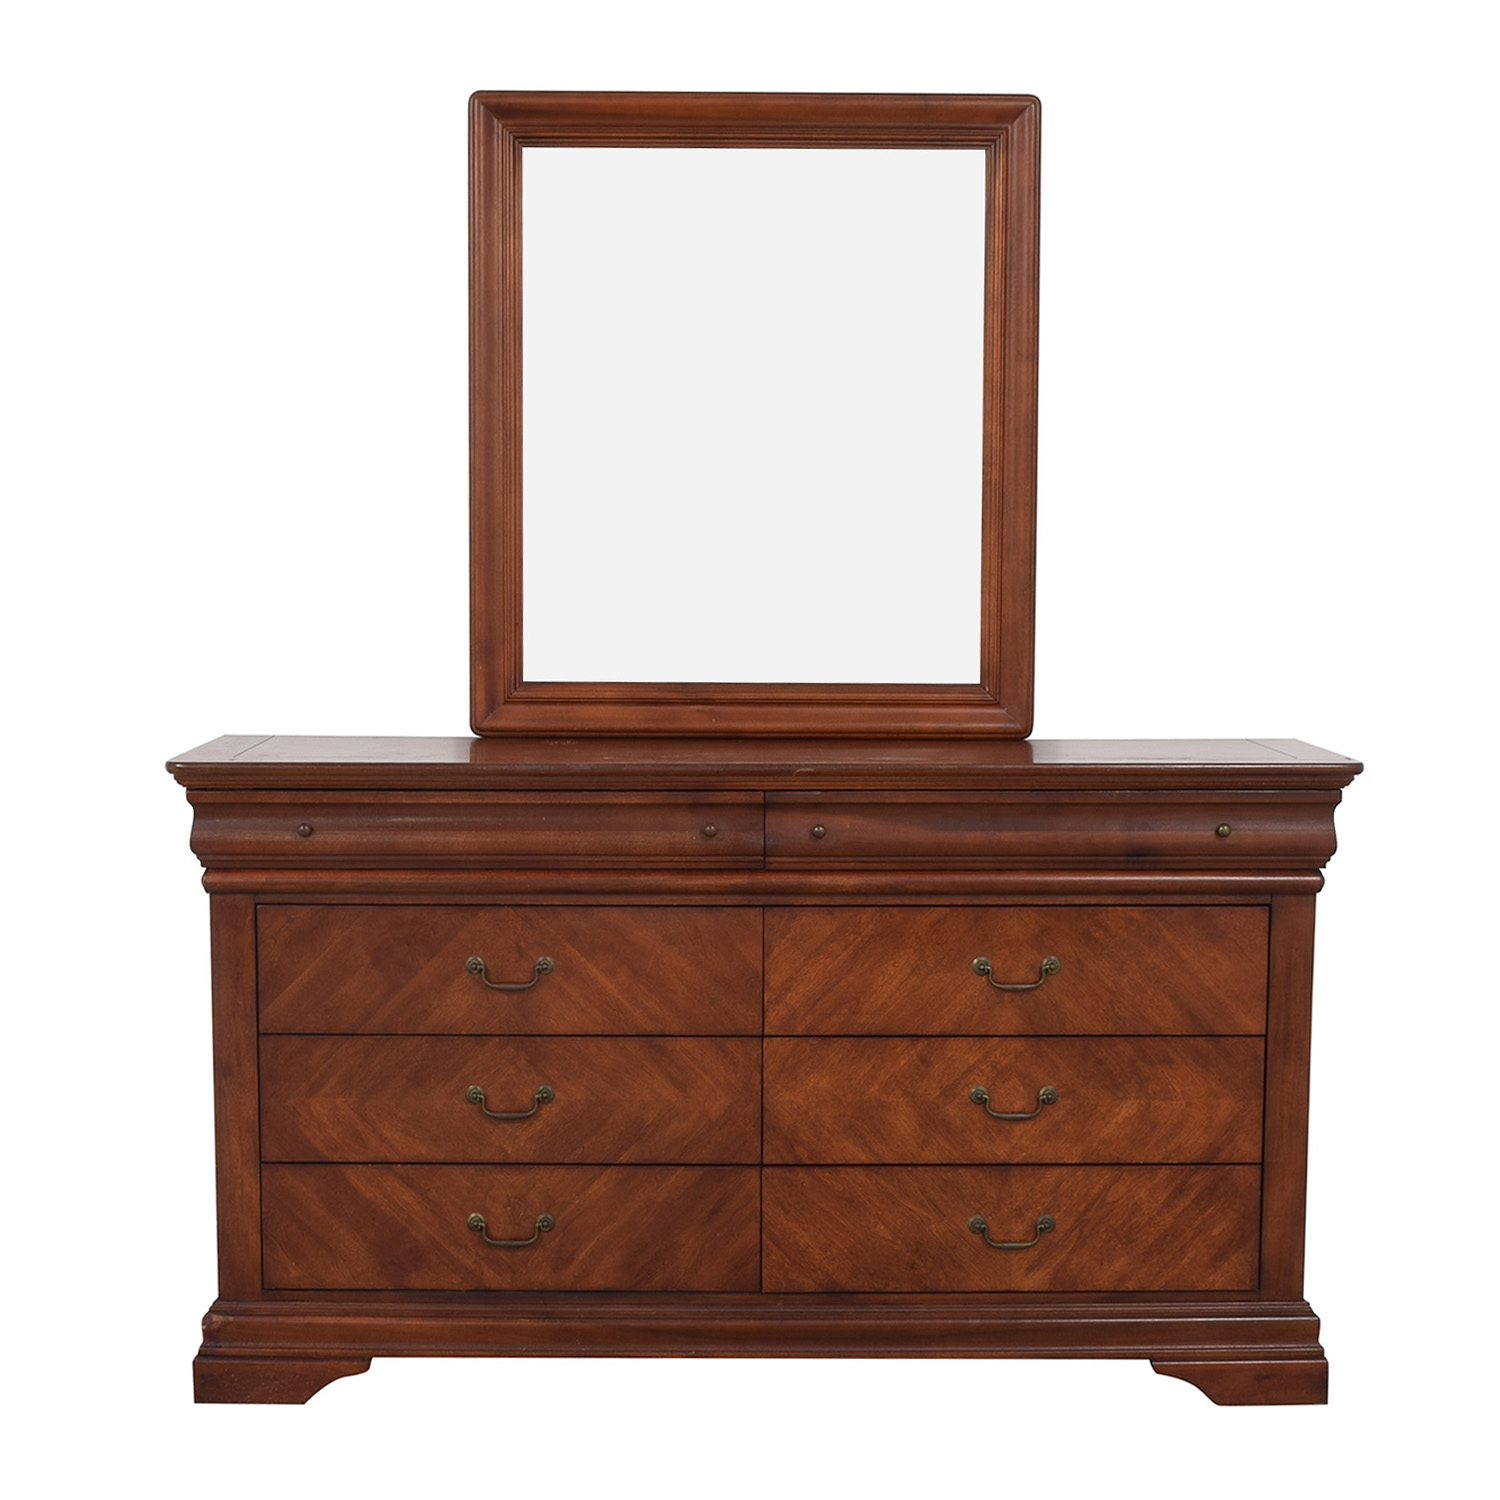 Collezione Europa Collezione Europa Dresser with Glass Mirror second hand